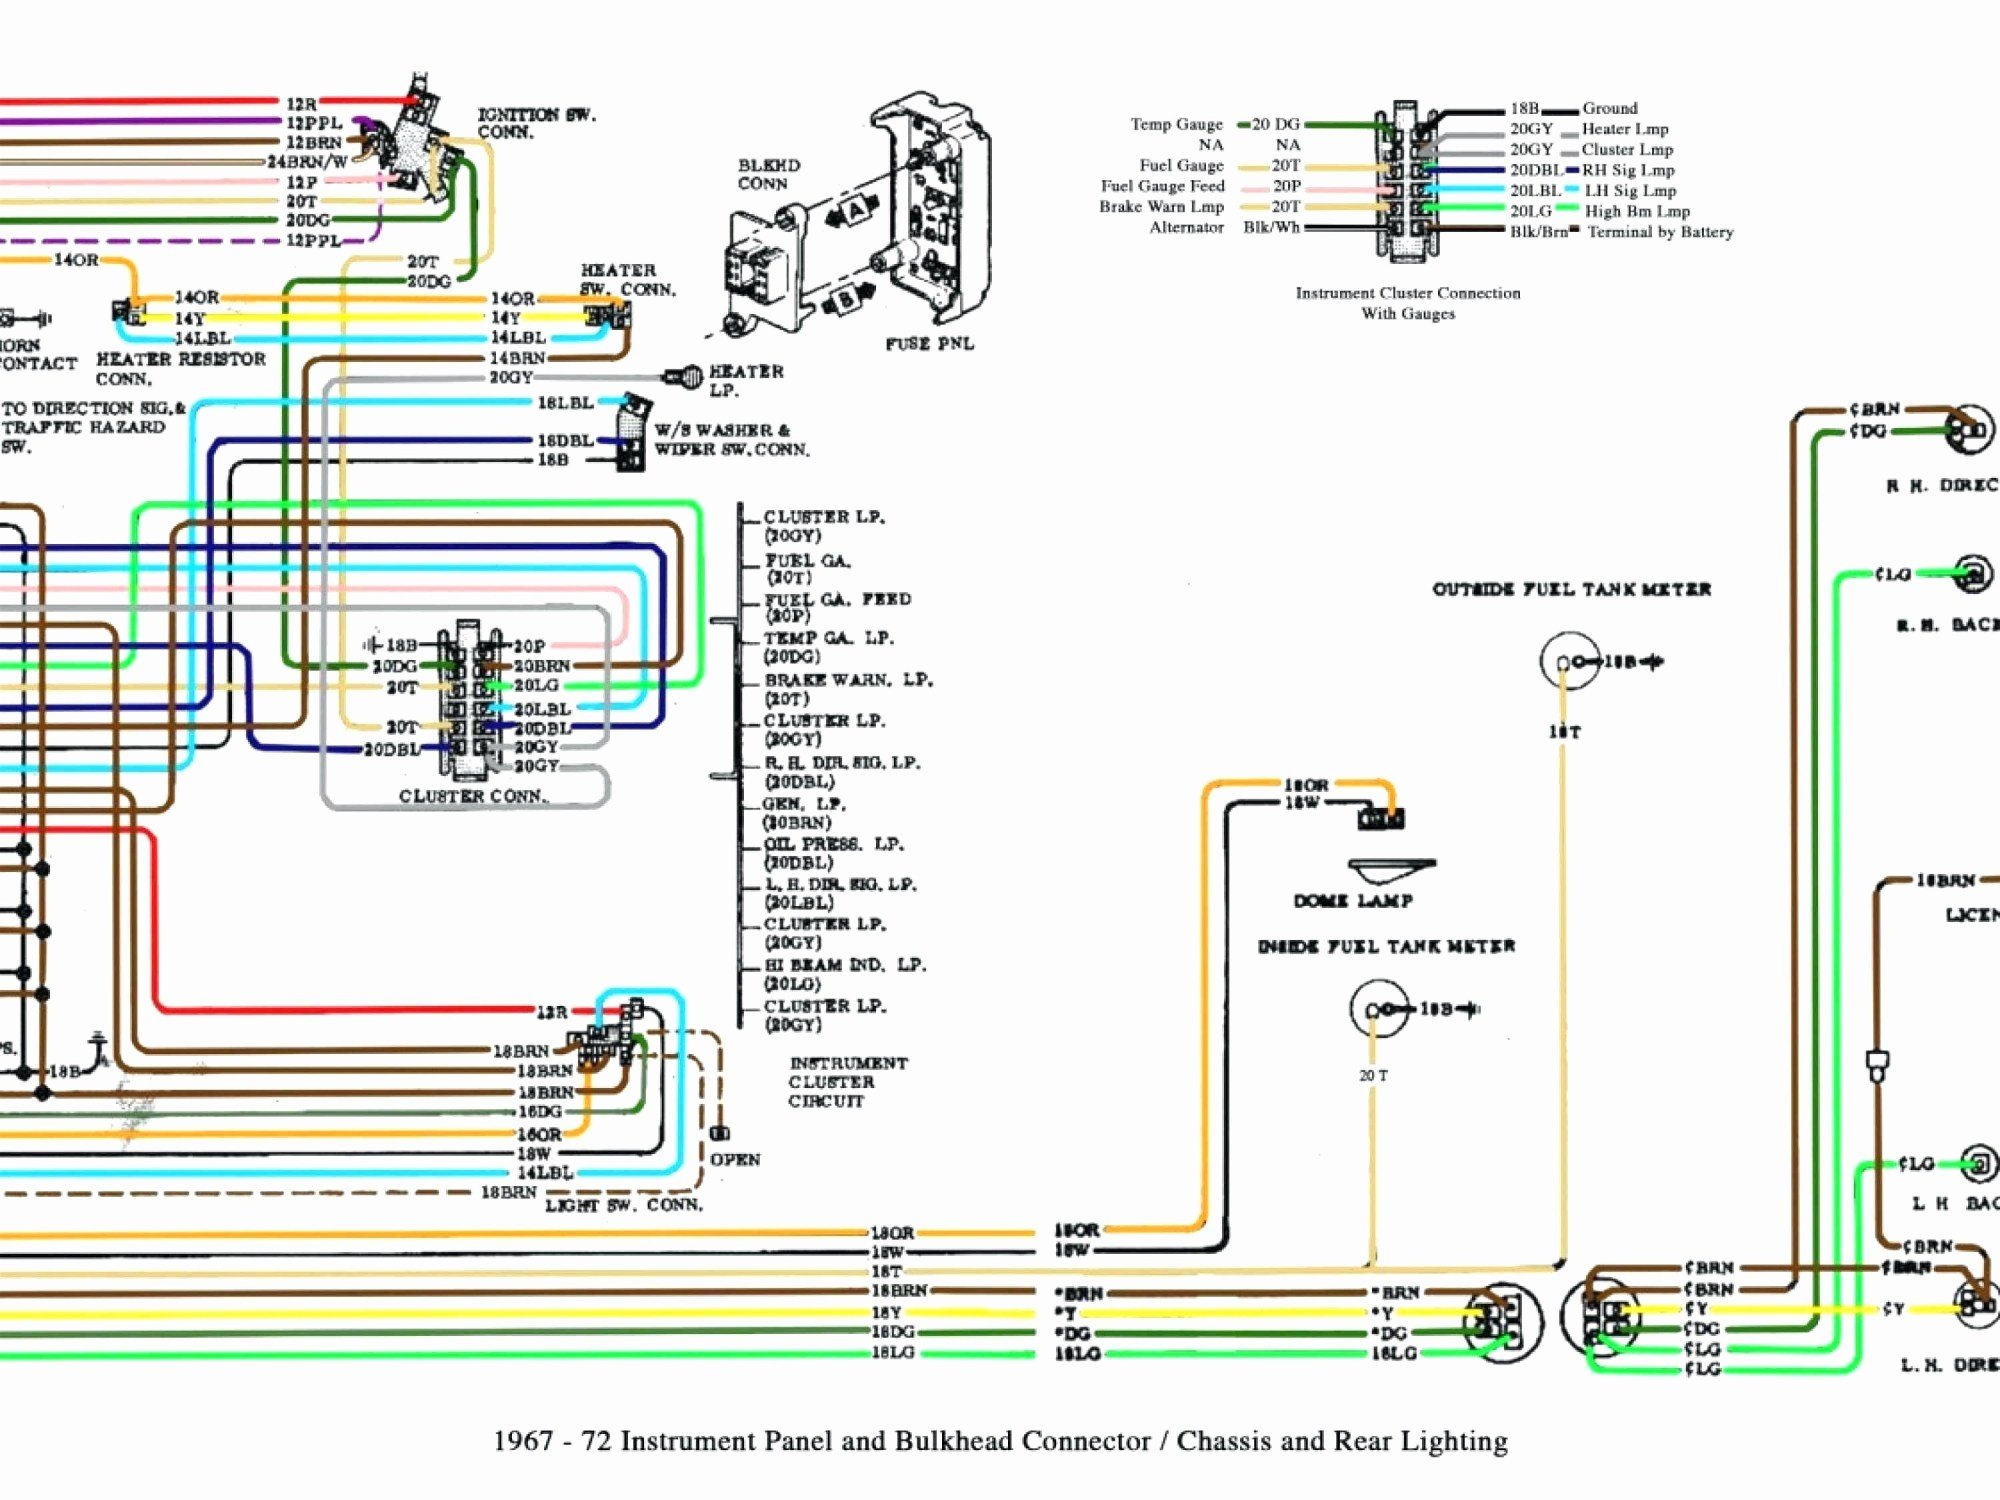 hight resolution of 97 chevy radio wiring diagram wiring diagram expert 97 tahoe radio wire diagram